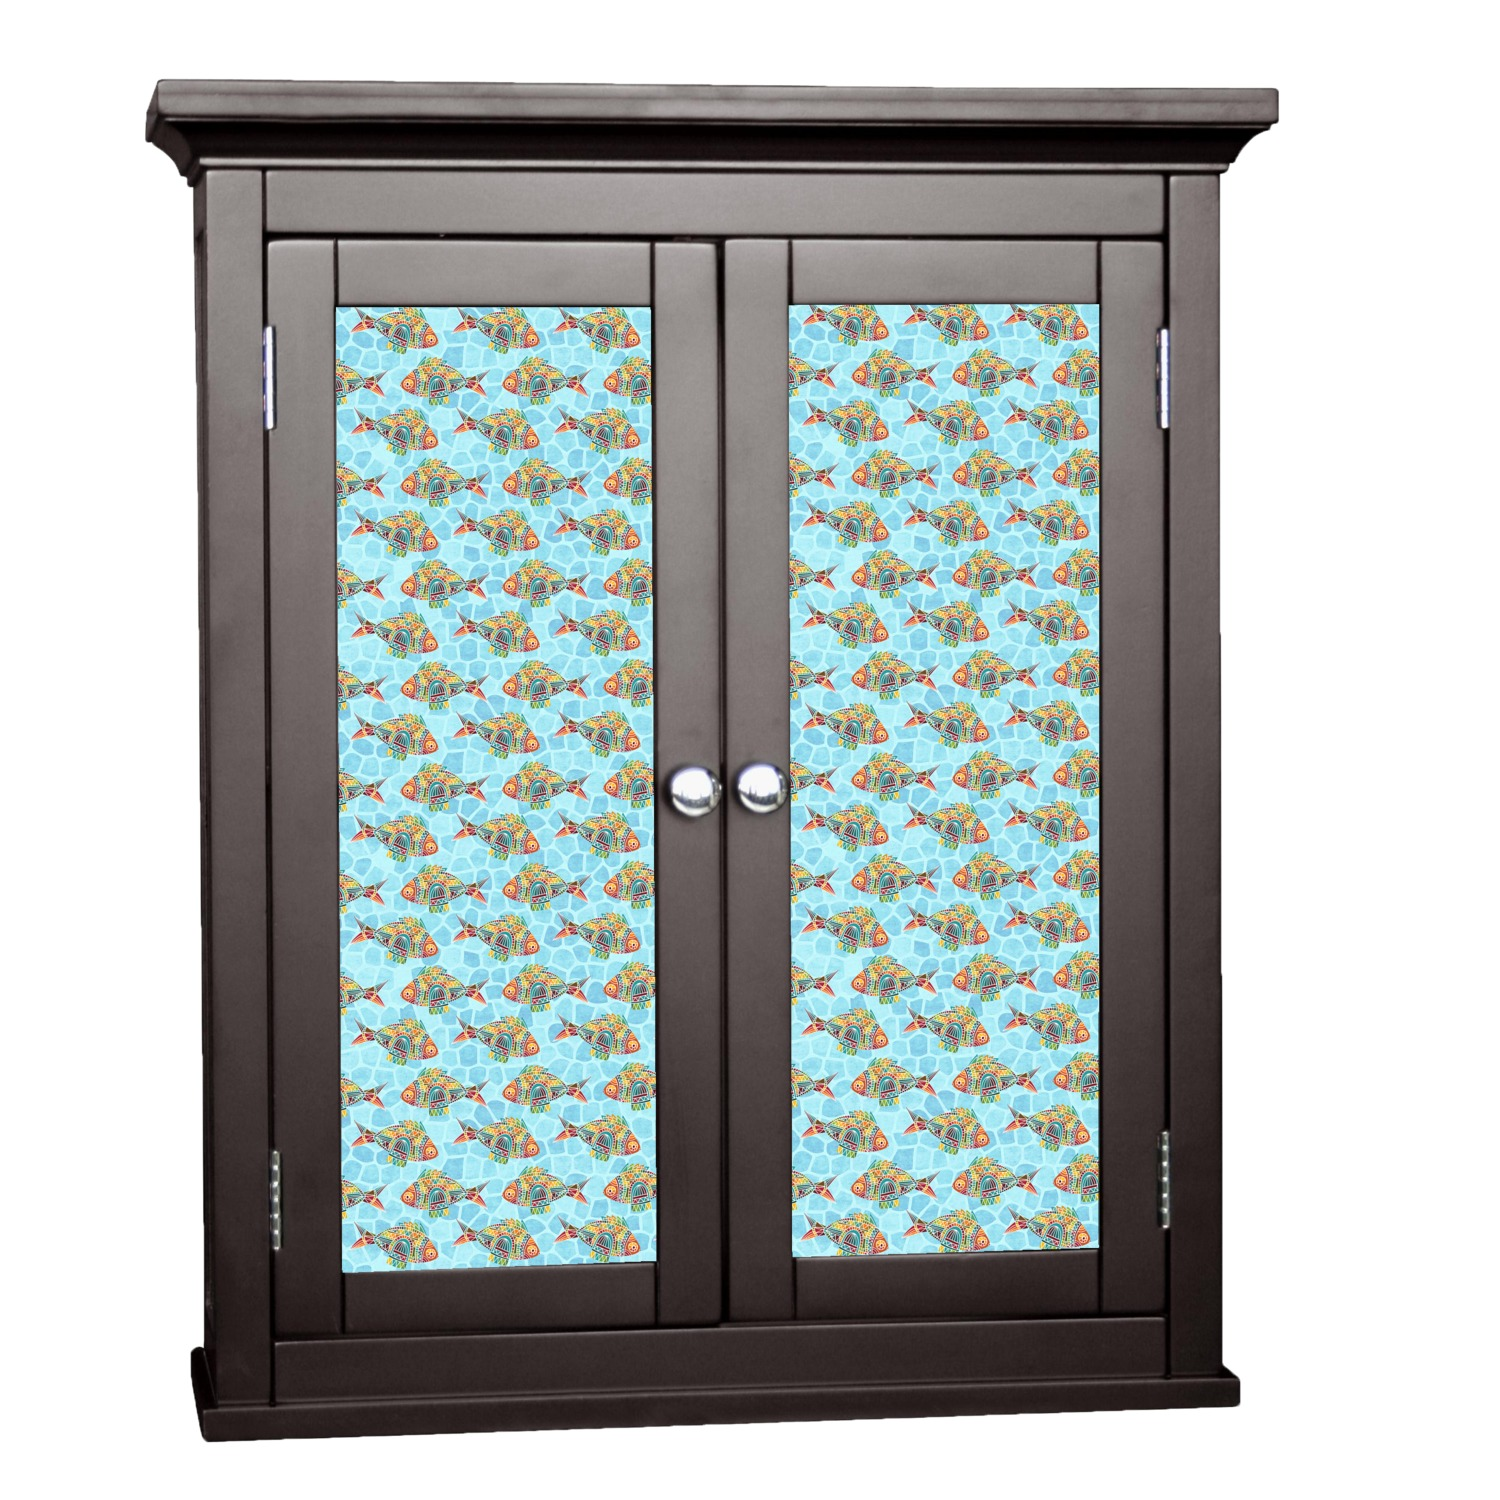 Mosaic fish cabinet decal large personalized for Kitchen cabinets lowes with free custom stickers